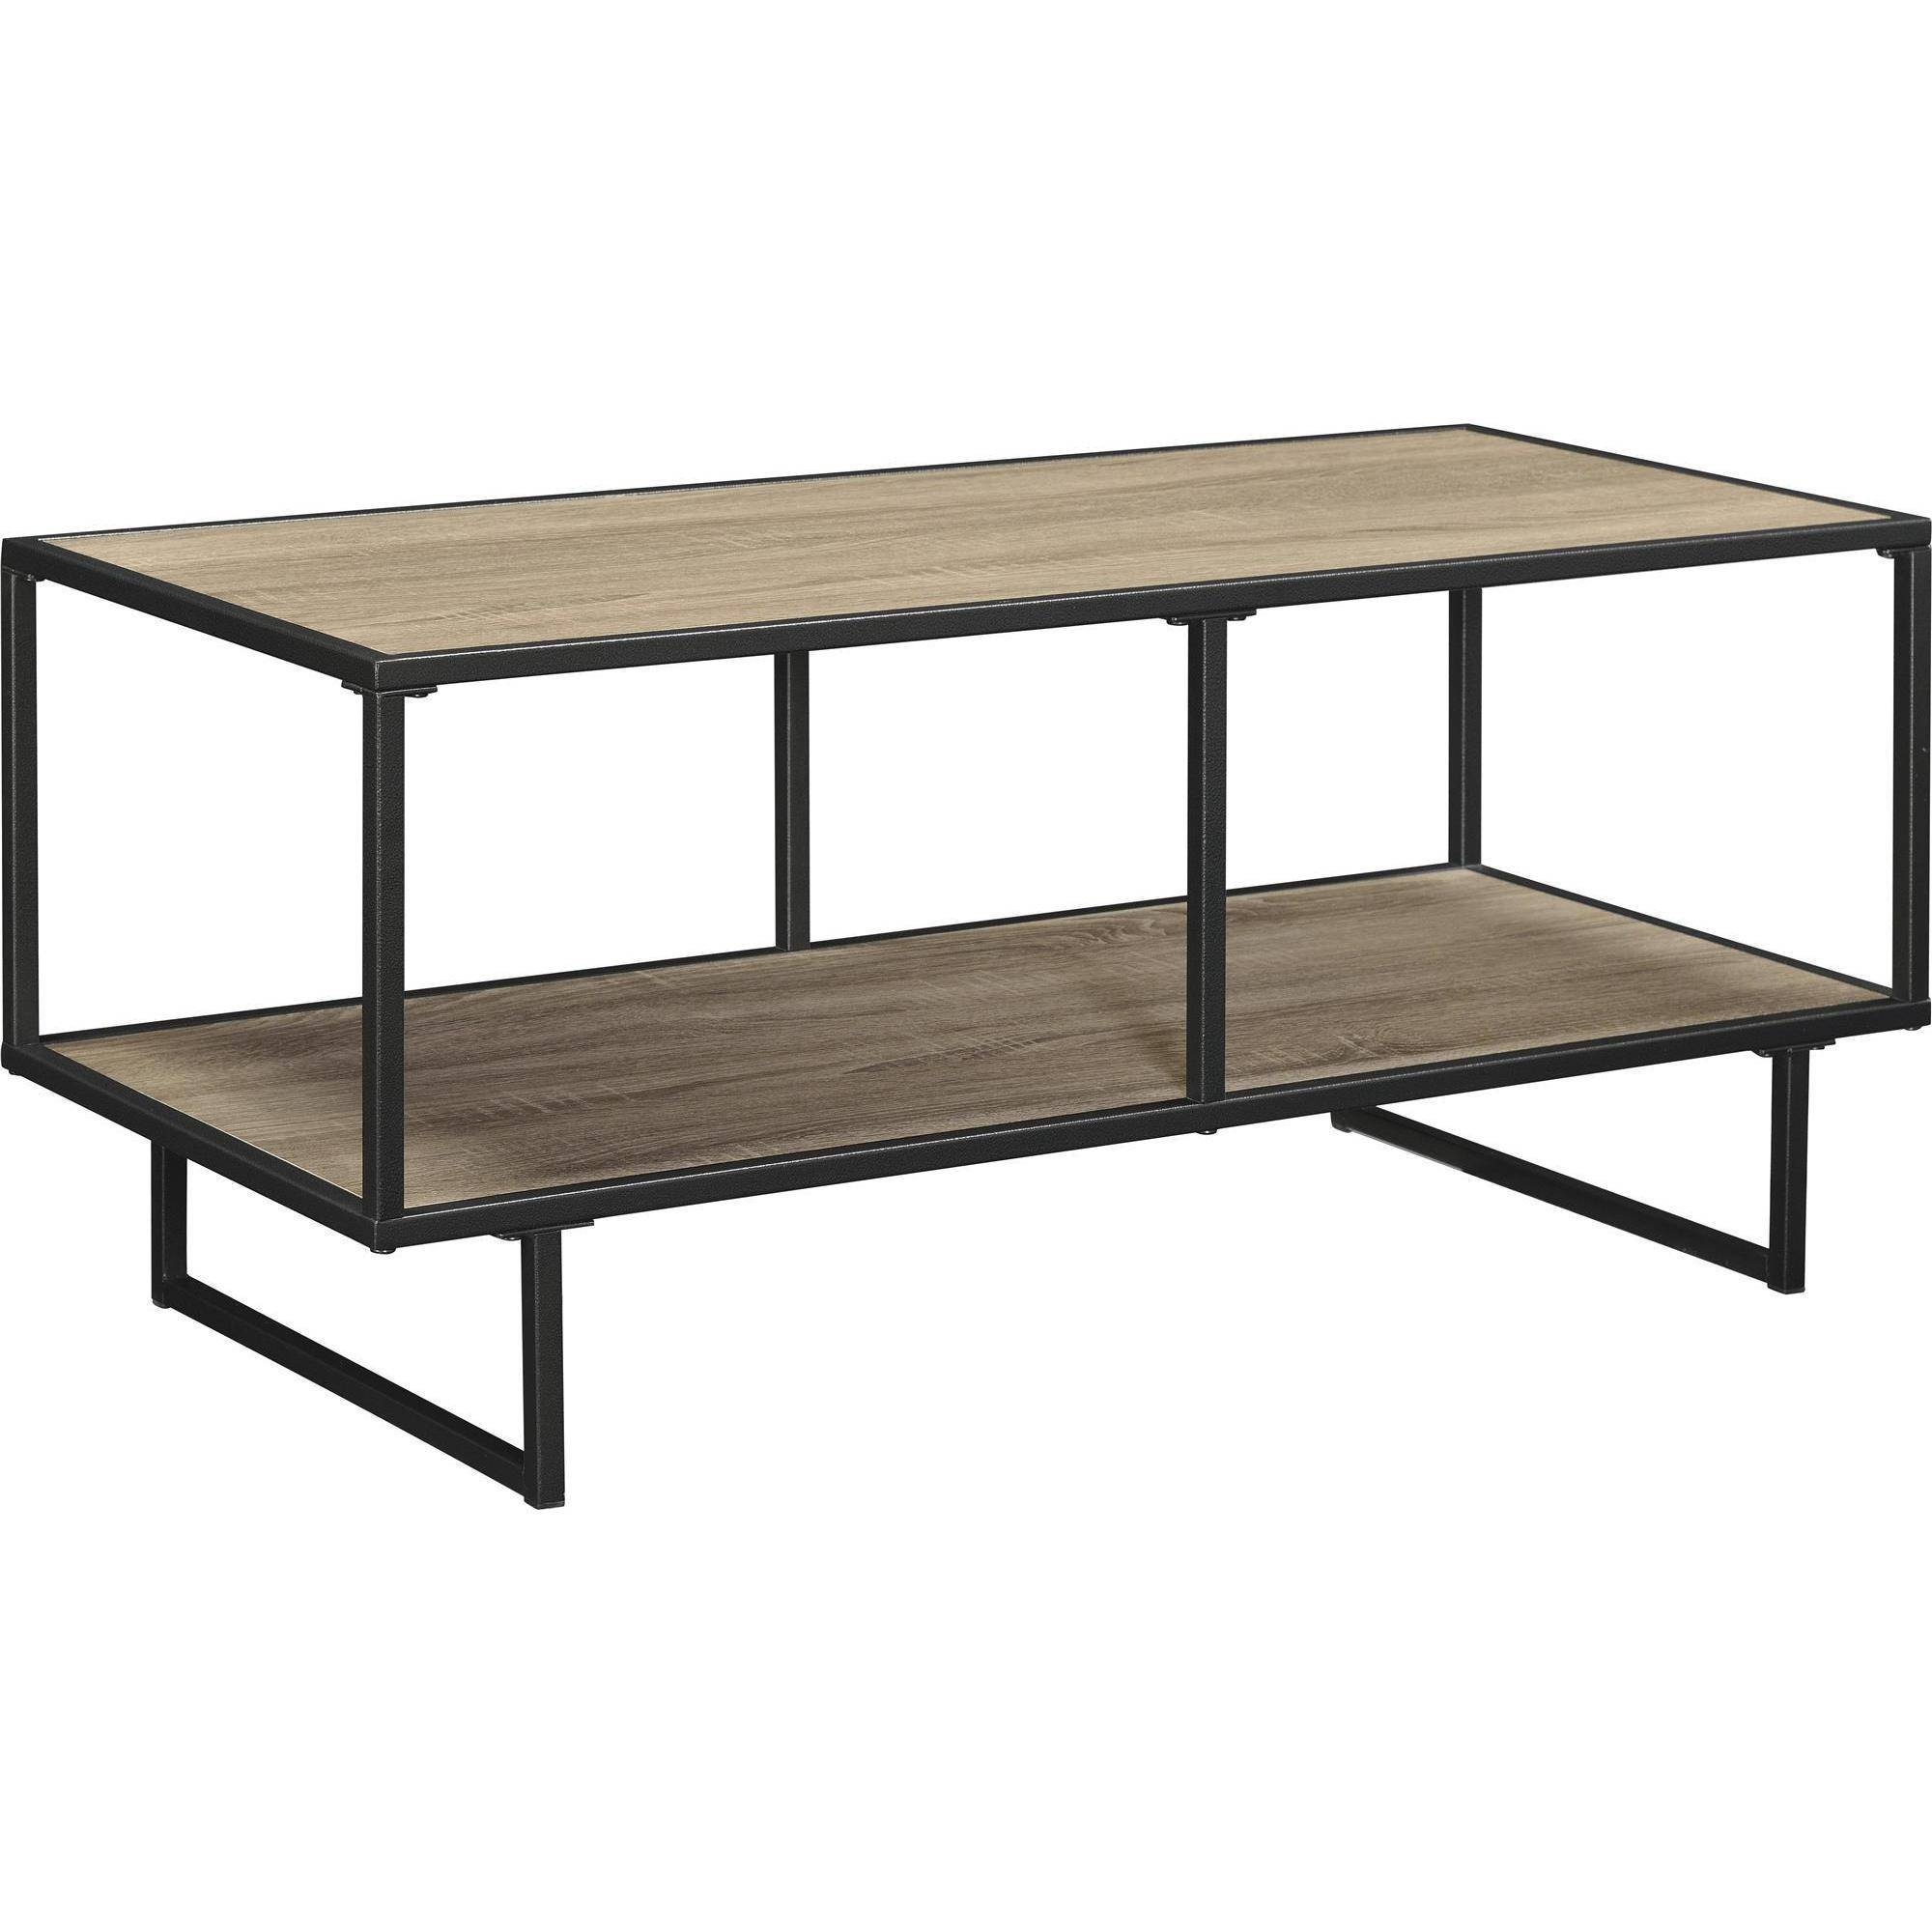 Emmett Sonoma Tv Stand/coffee Frame Metal With Table For Tvs Up To For Gunmetal Media Console Tables (Photo 30 of 30)